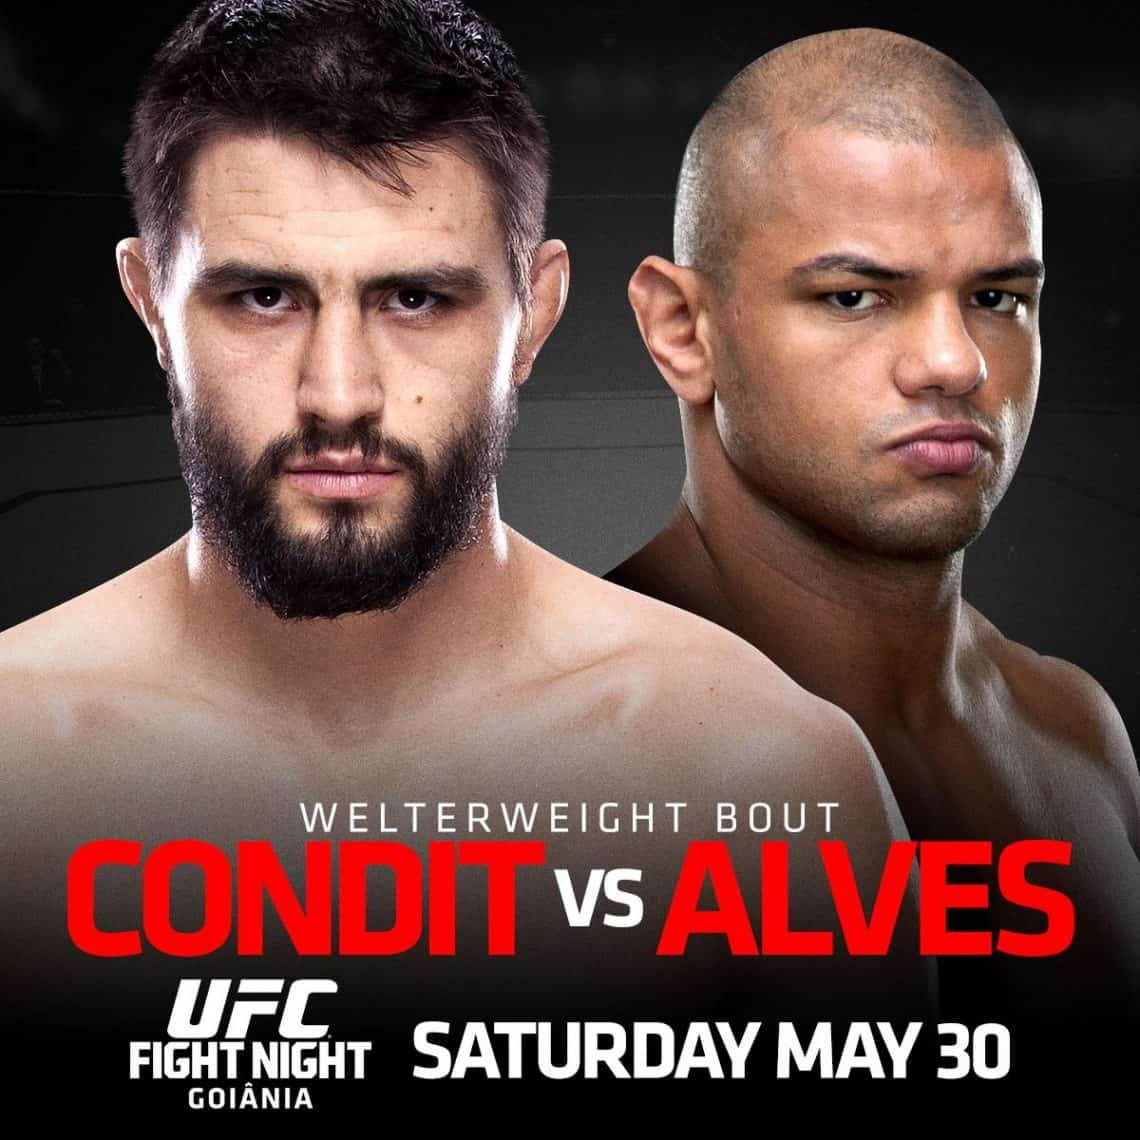 UFC Fight Night: Condit vs. Alves 1